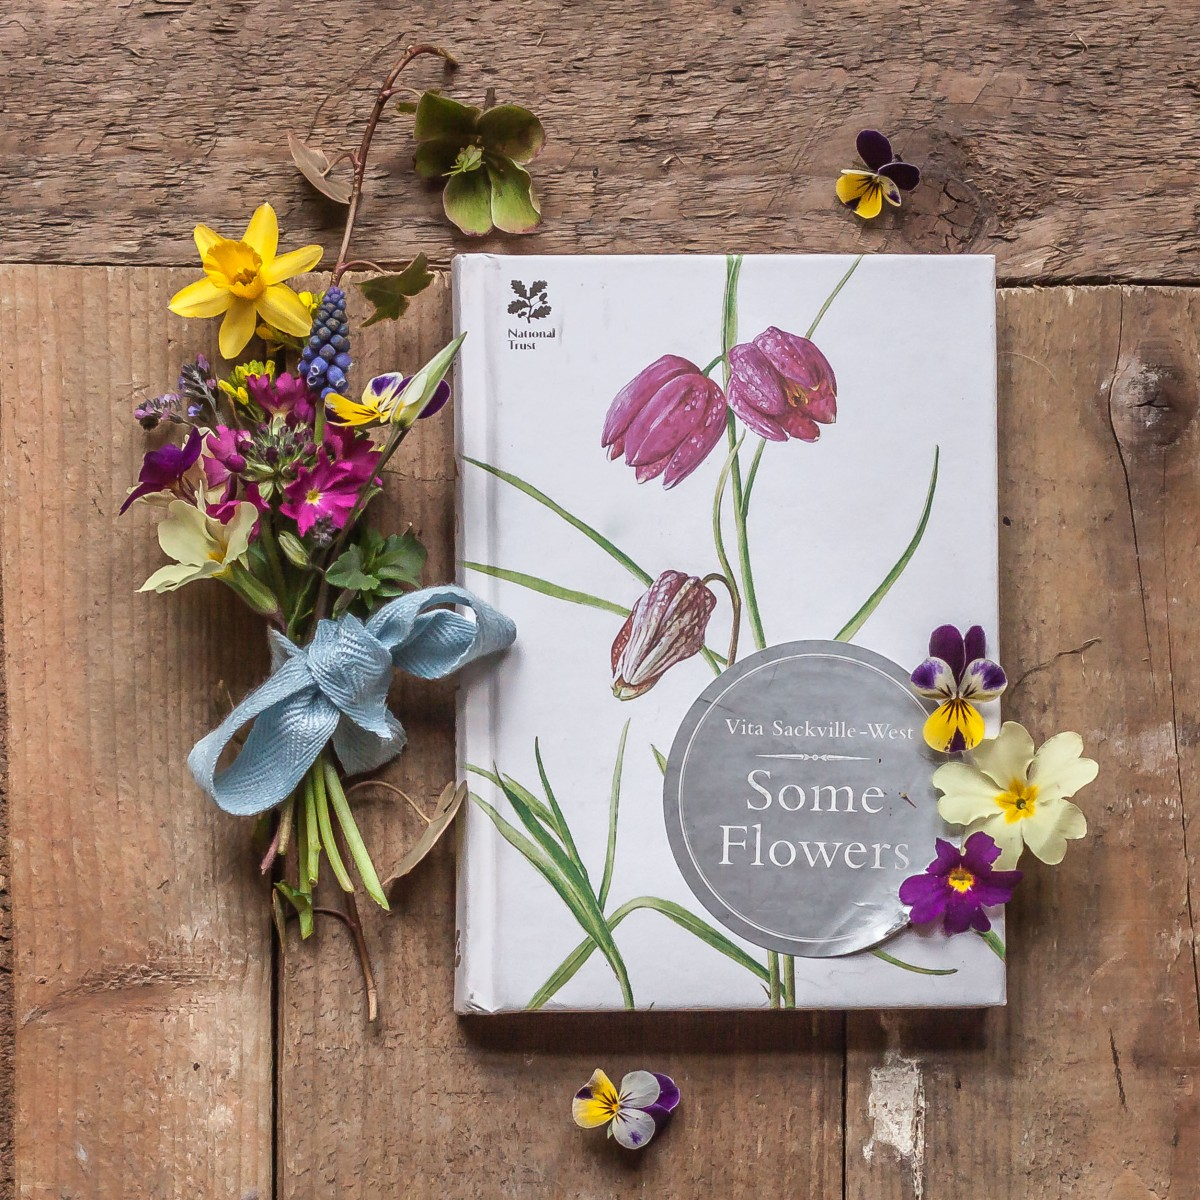 Book review: Some Flowers by Vita Sackville-West